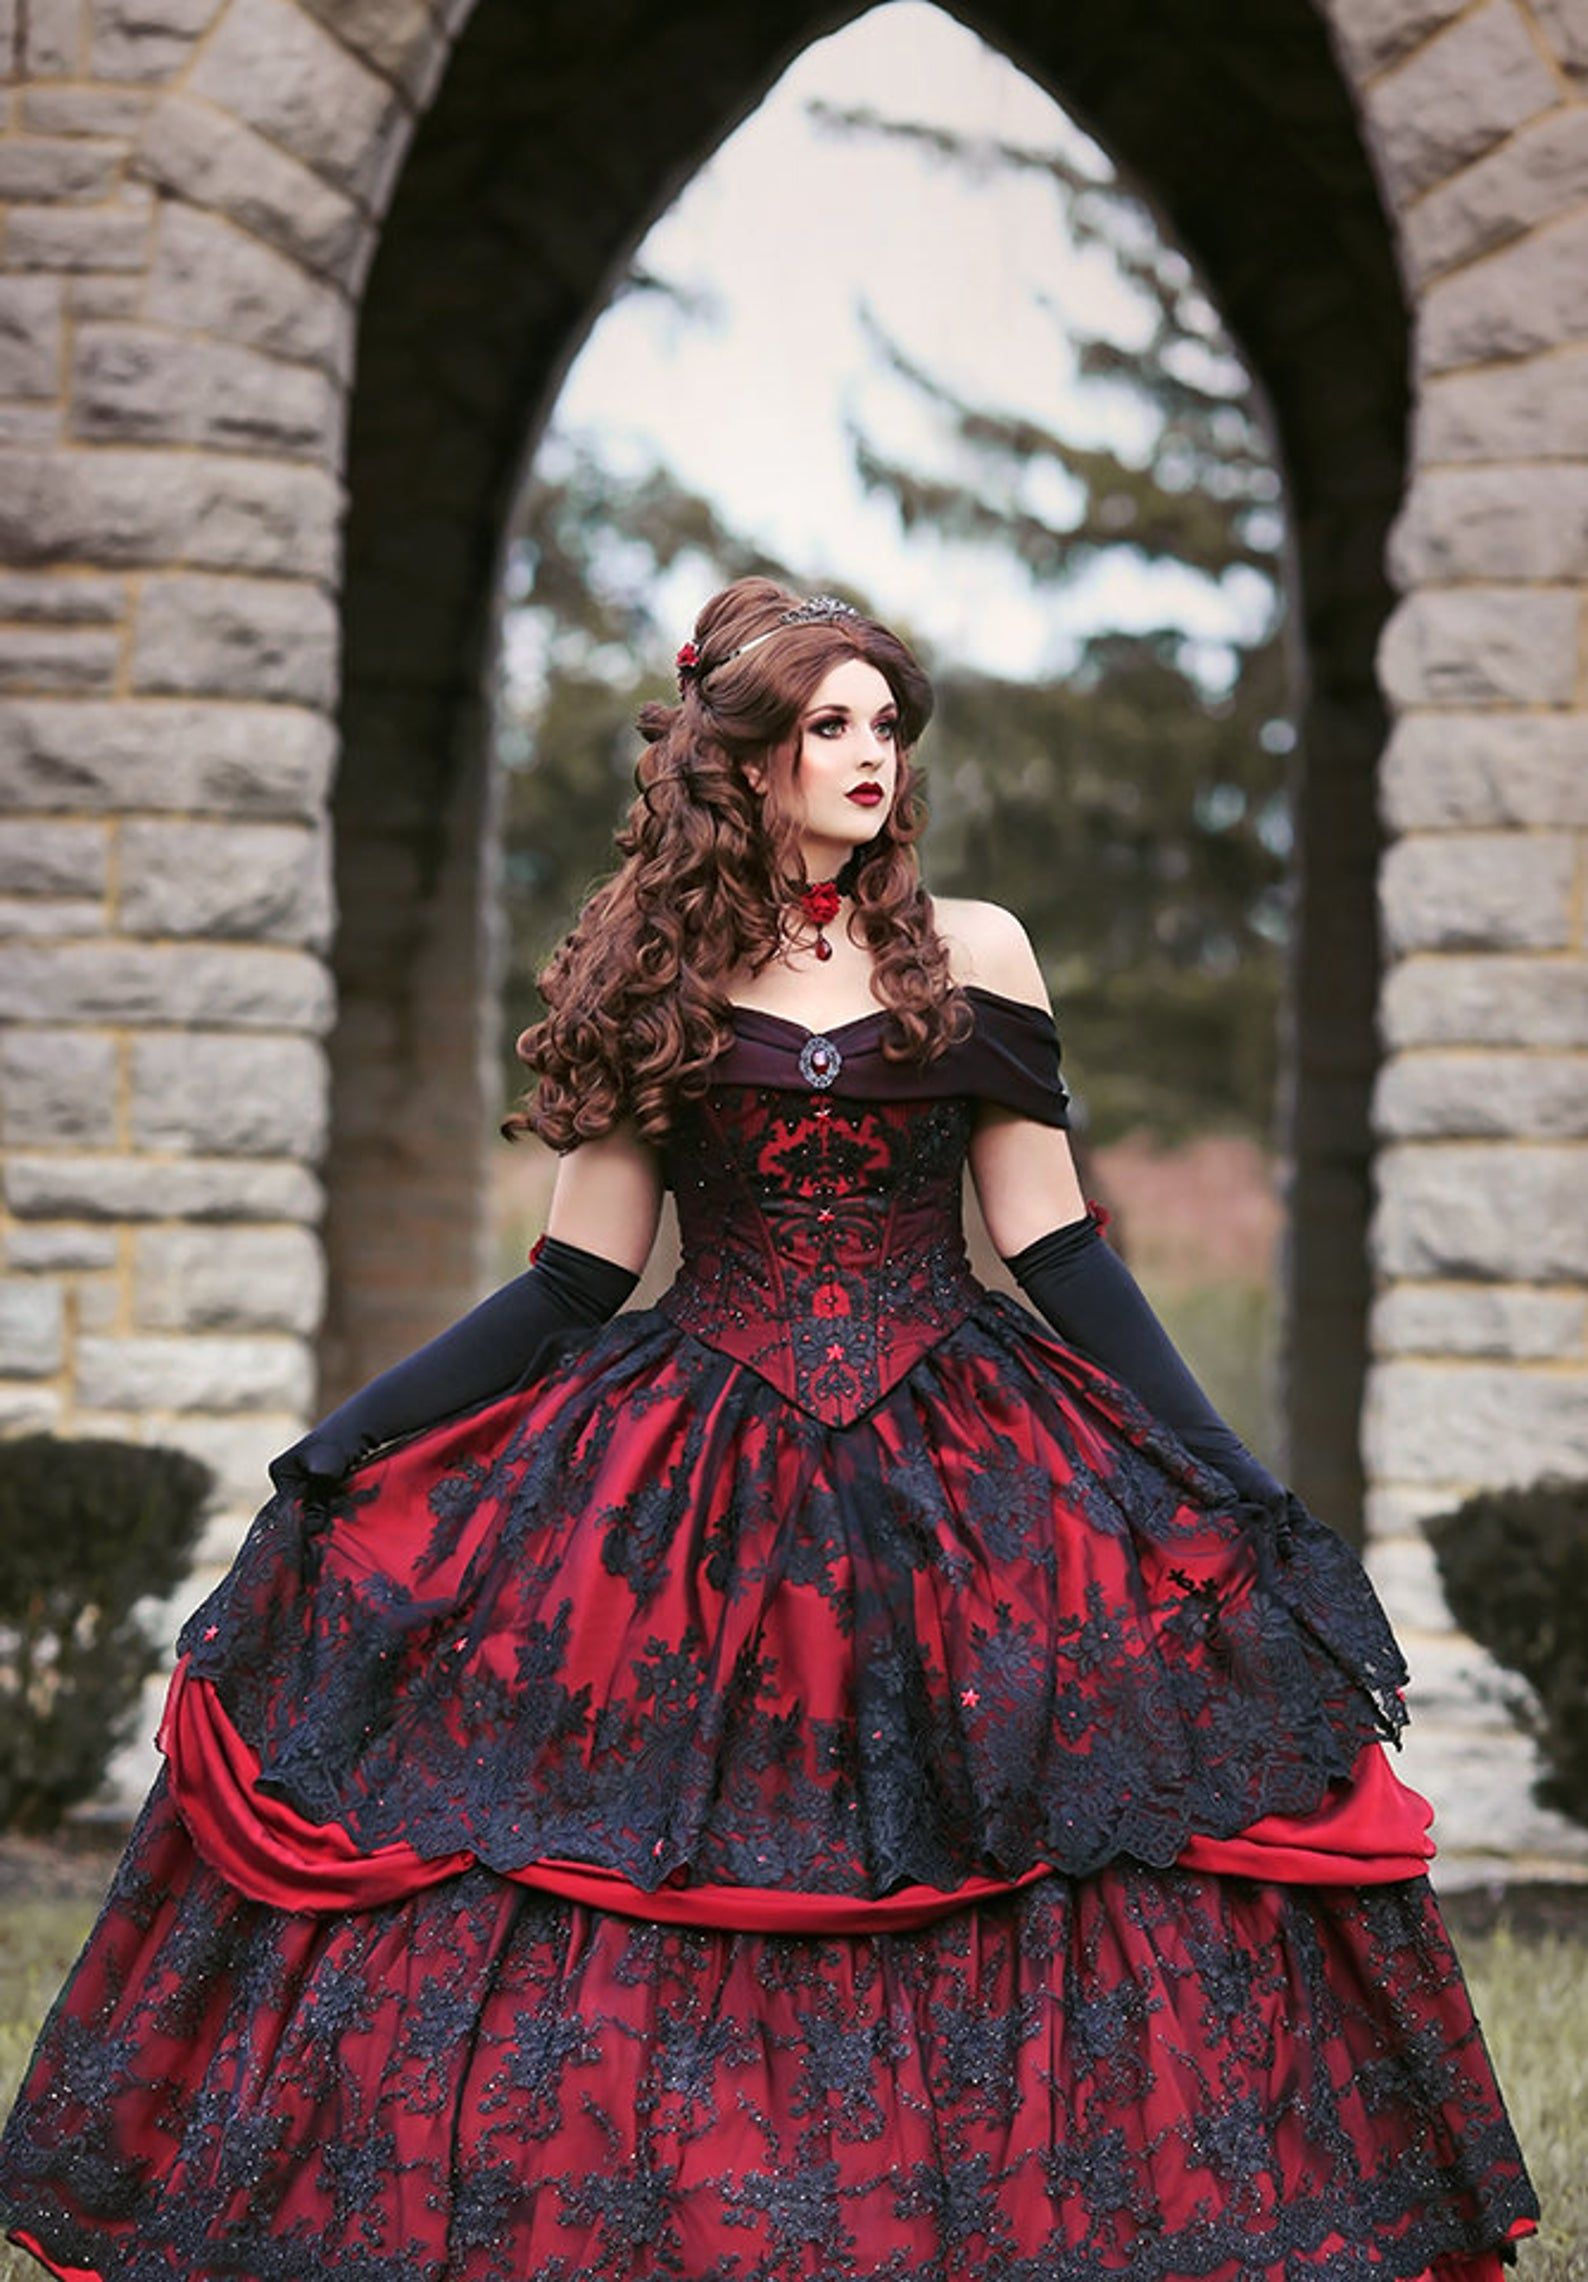 Gothic Wedding Belle Red Black Lace Fantasy Gown Wedding Halloween Upscale Costume Custom Size Fantasy Gowns Gothic Wedding Dress Fantasy Dress [ 2282 x 1588 Pixel ]